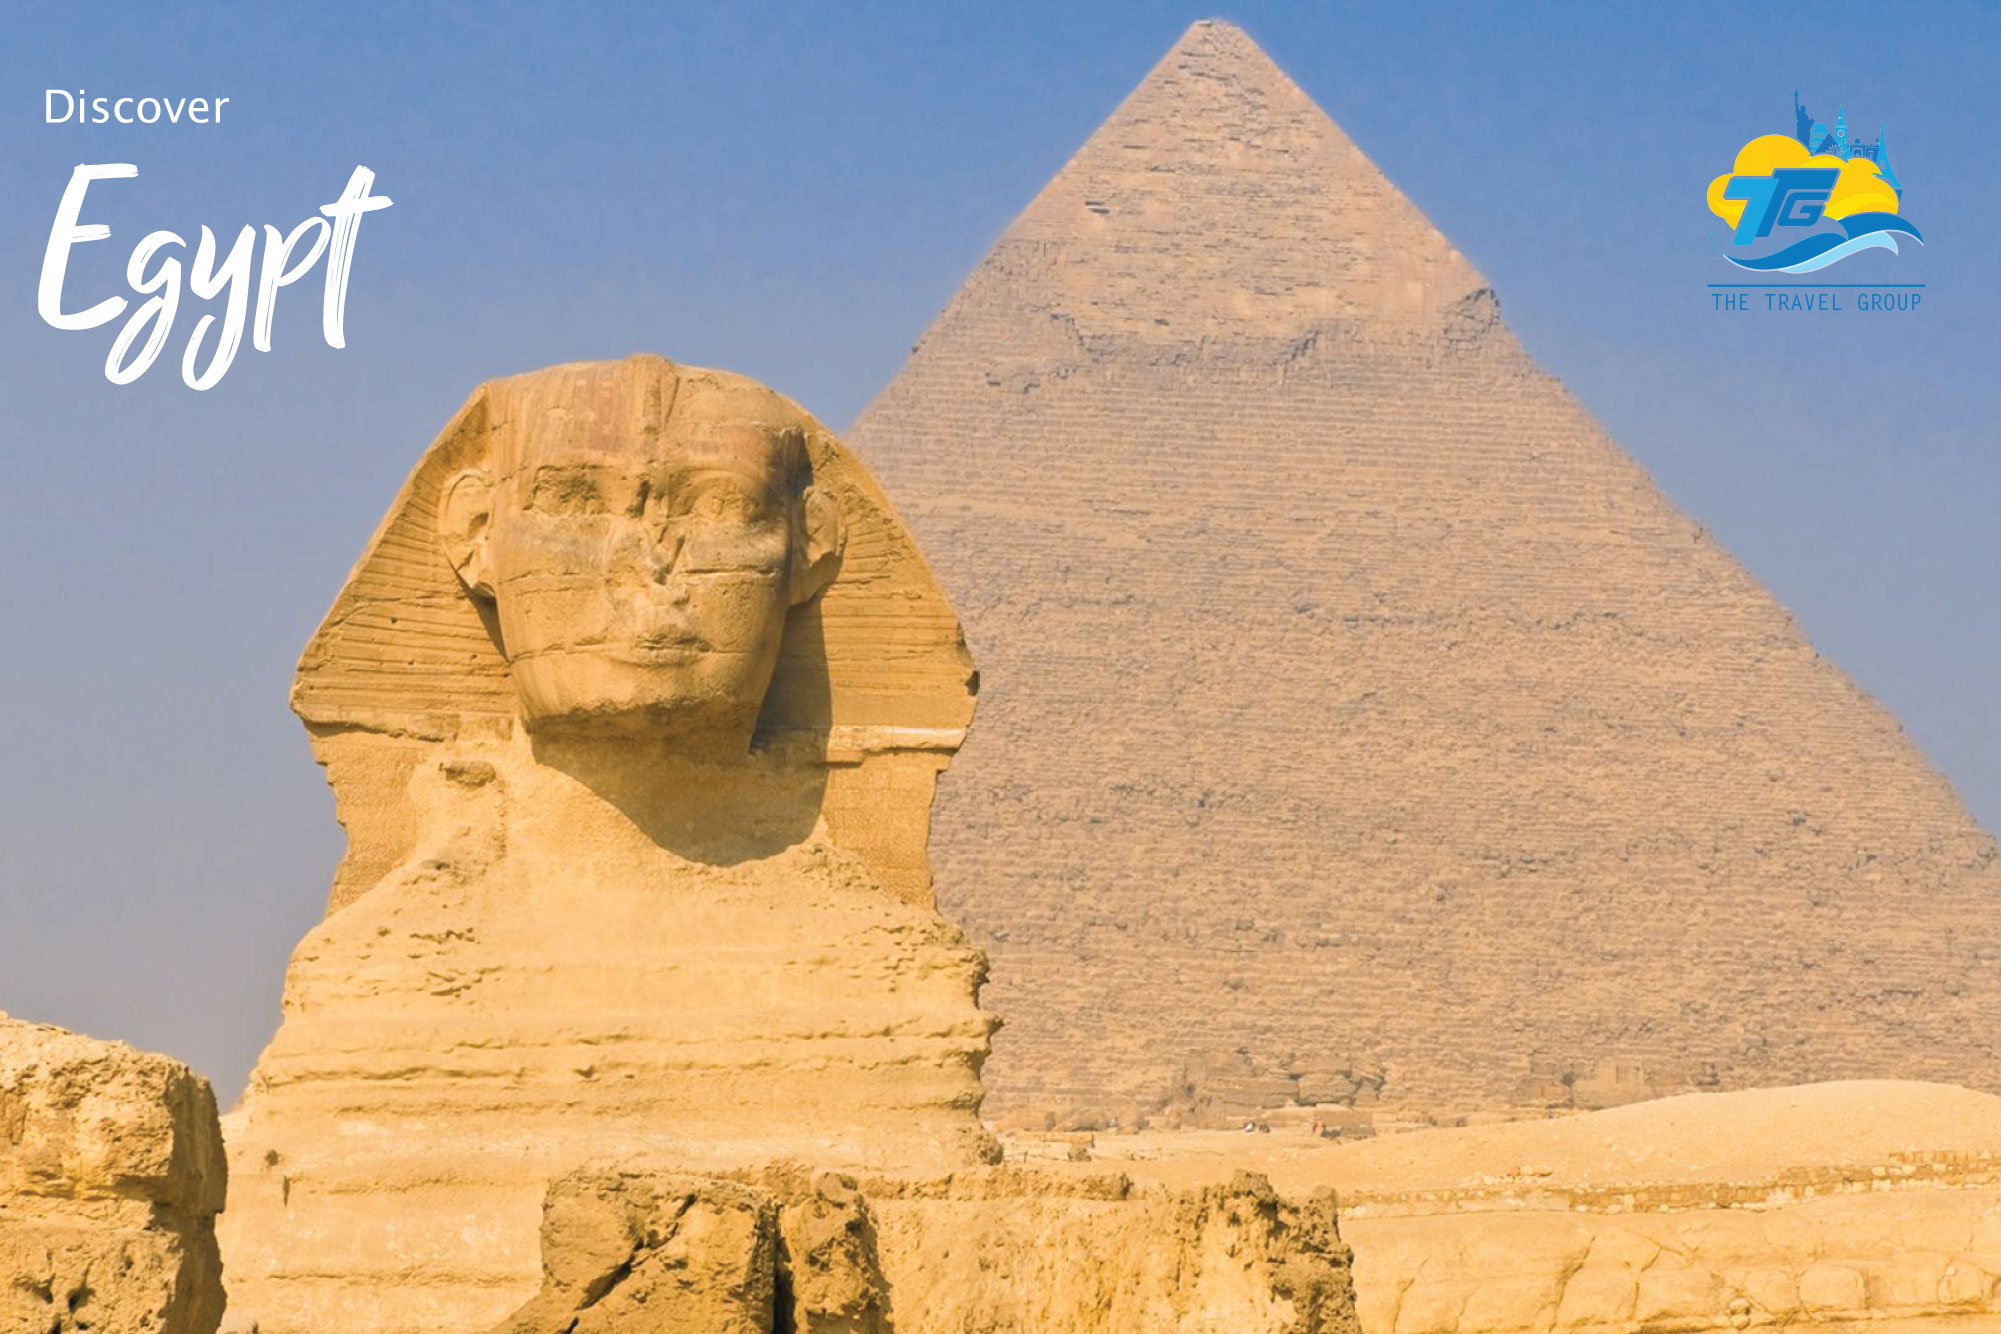 Offer & Packages for Egypt